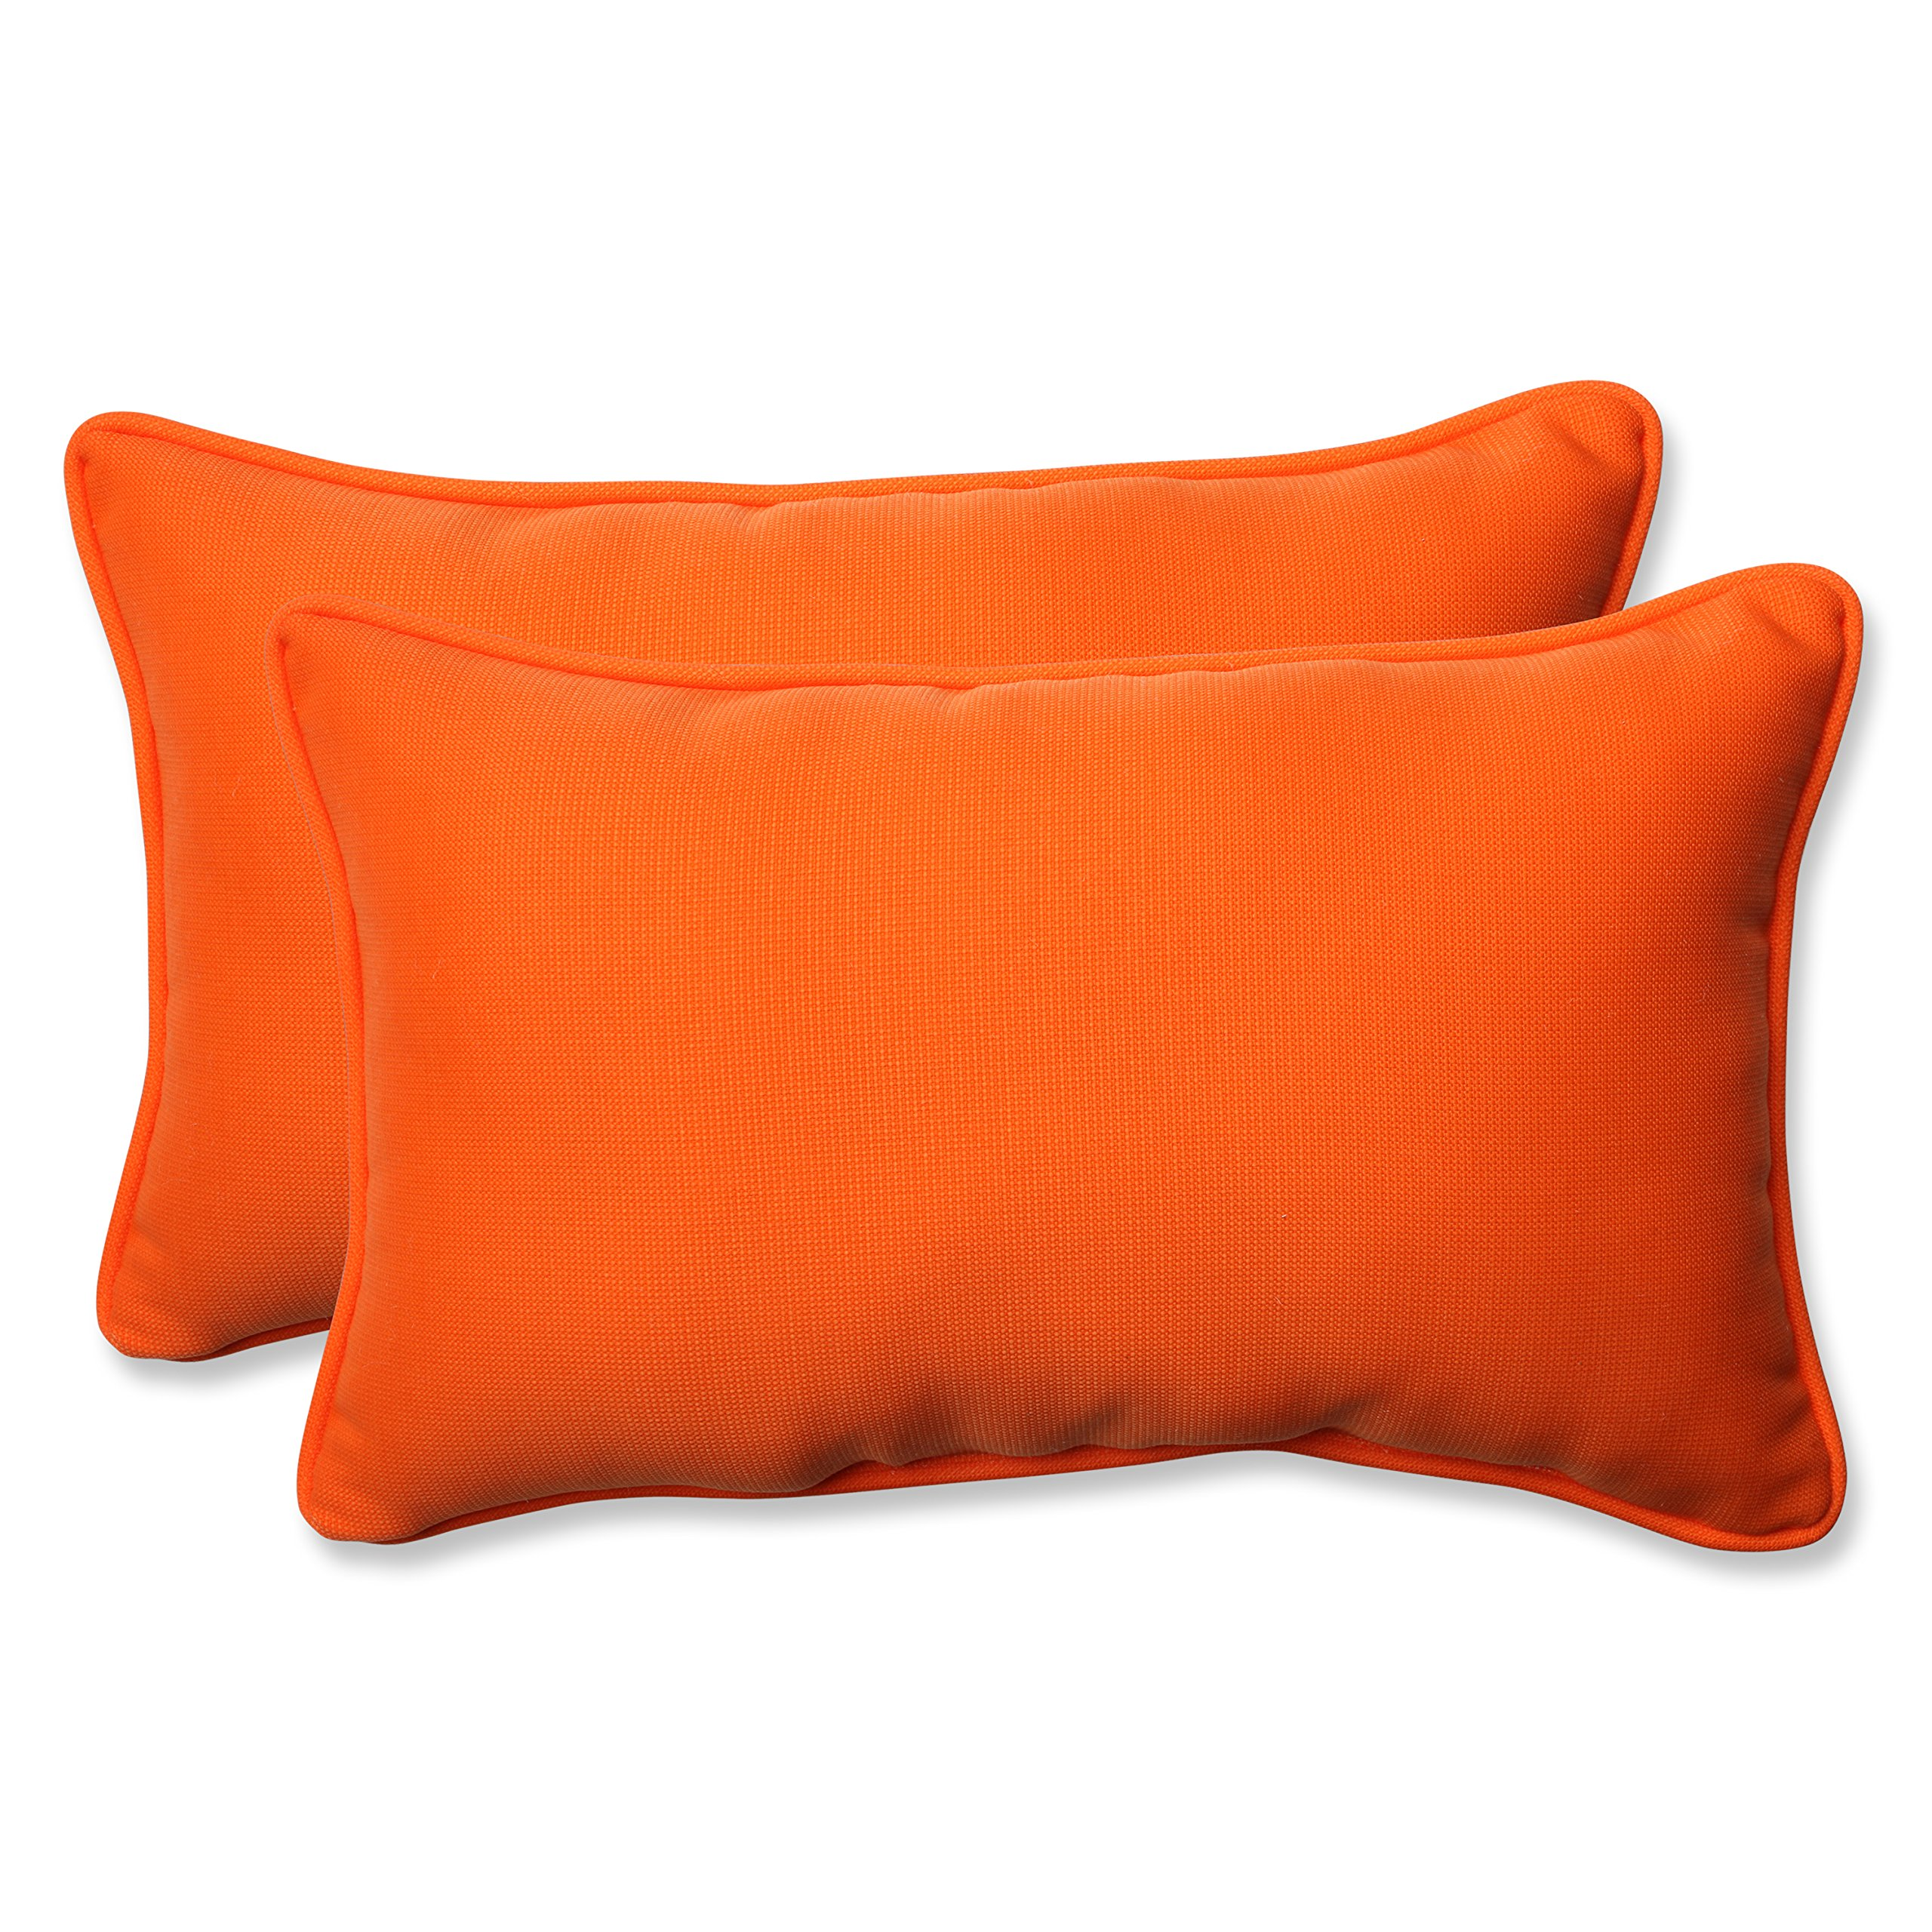 Pillow Perfect Outdoor Sundeck Corded Rectangular Throw Pillow, Orange, Set of 2